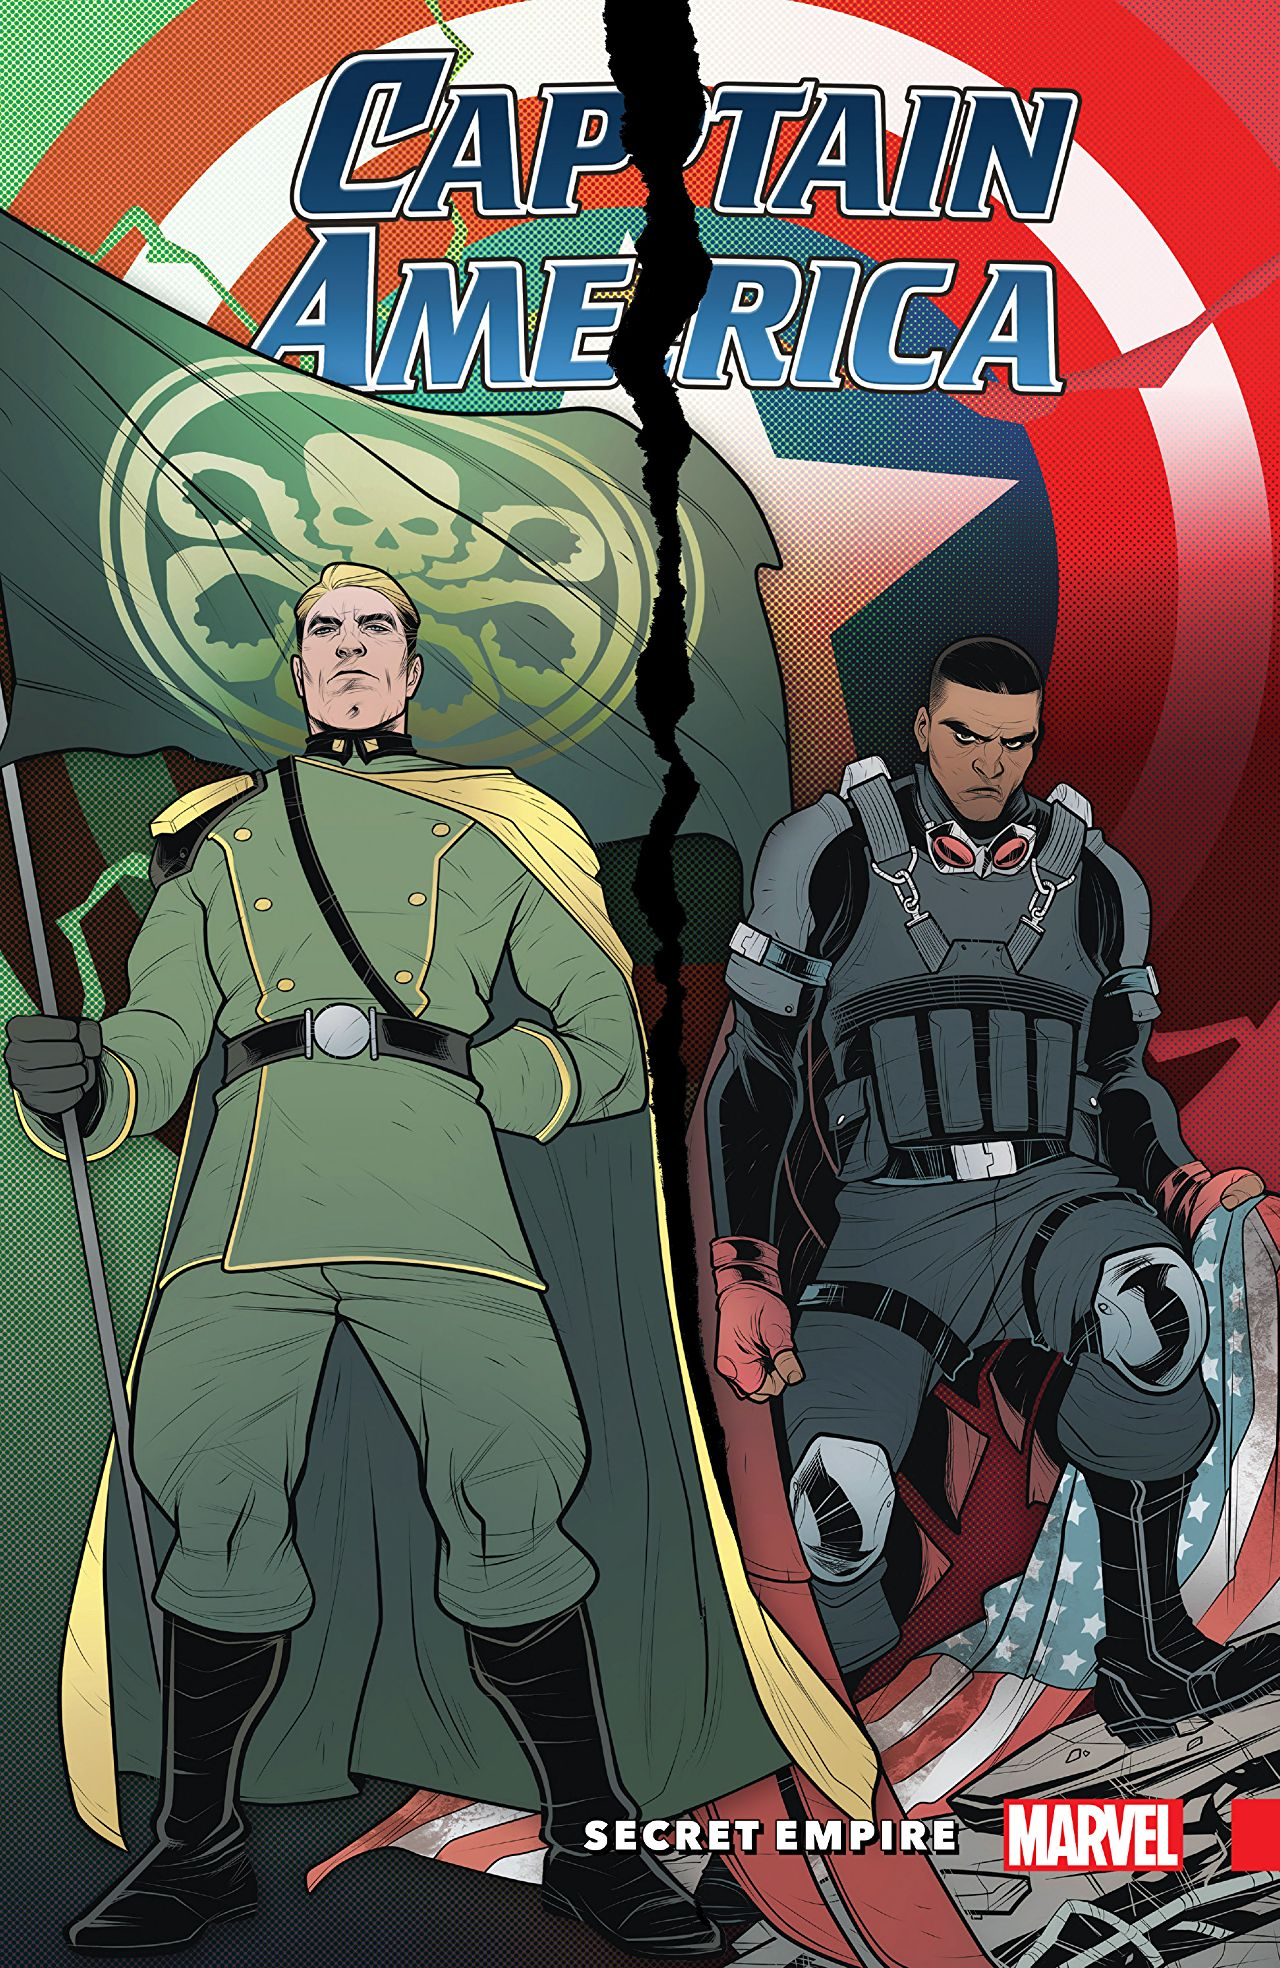 'Captain America: Secret Empire' review: Leaves readers wanting more in both positive and negative ways